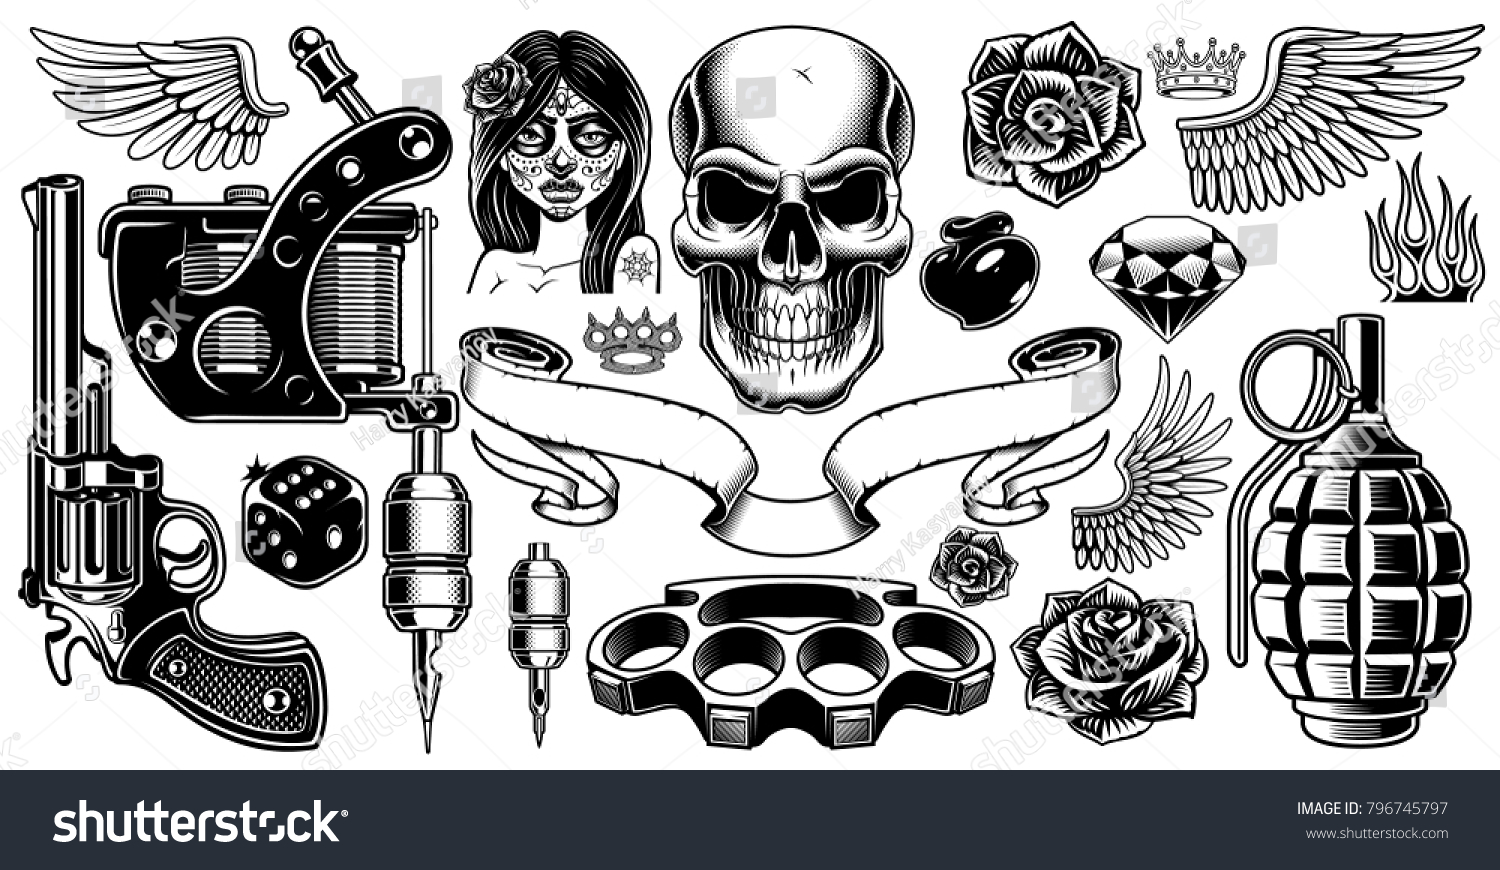 Set of tattoo art black and white tattoo design elements isolated on white background